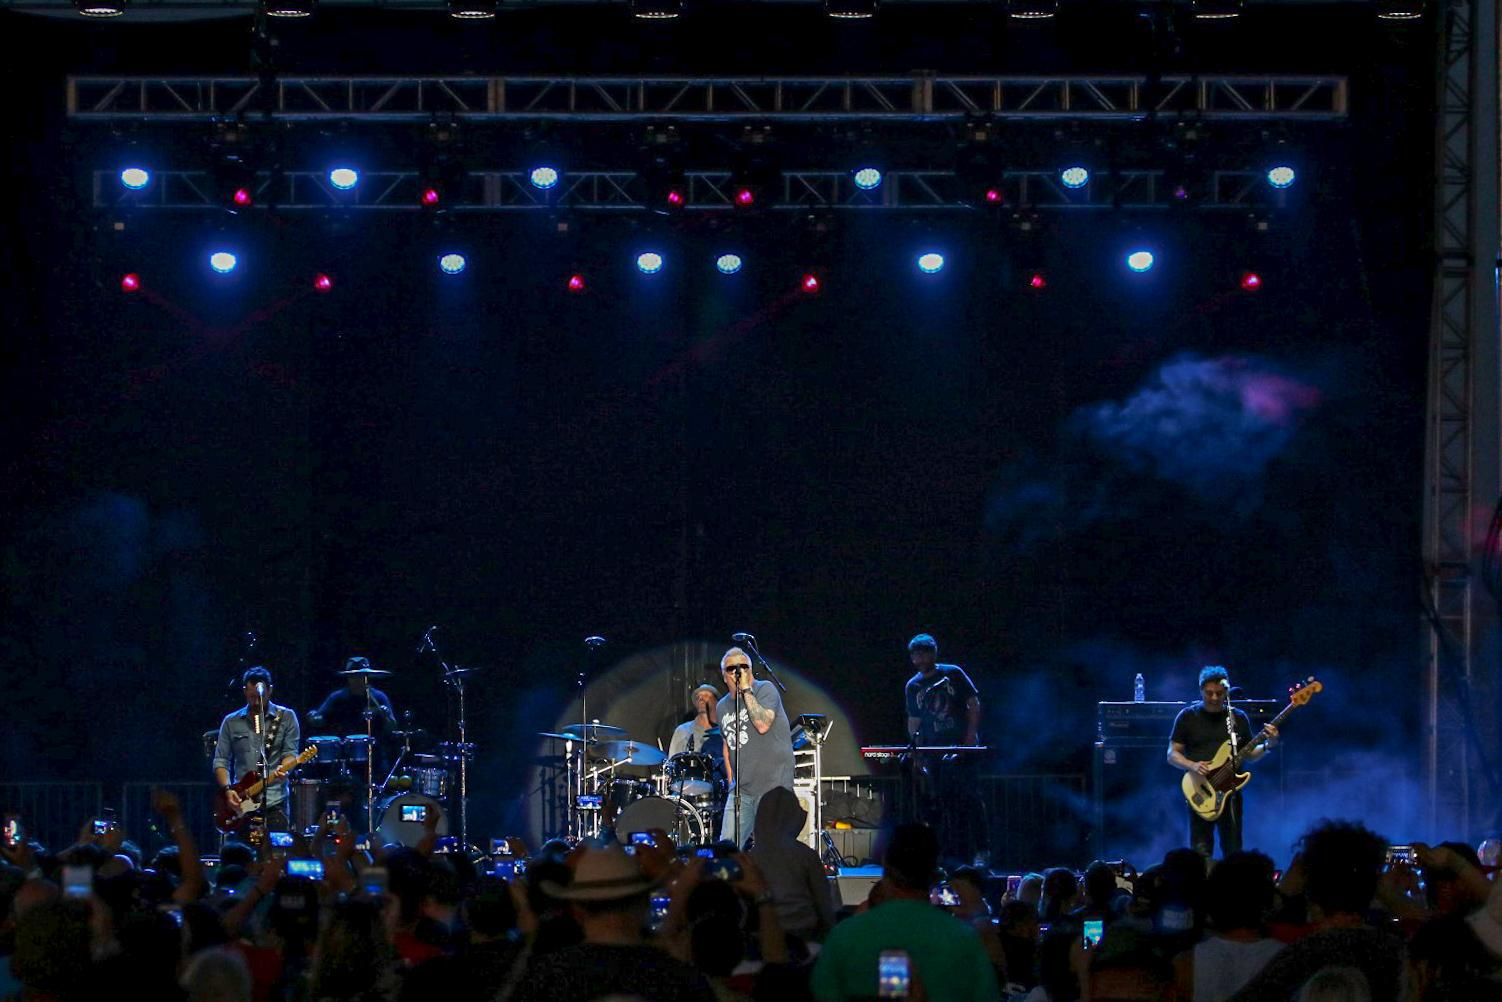 Smash Mouth 4th of July July prosystems av production concert